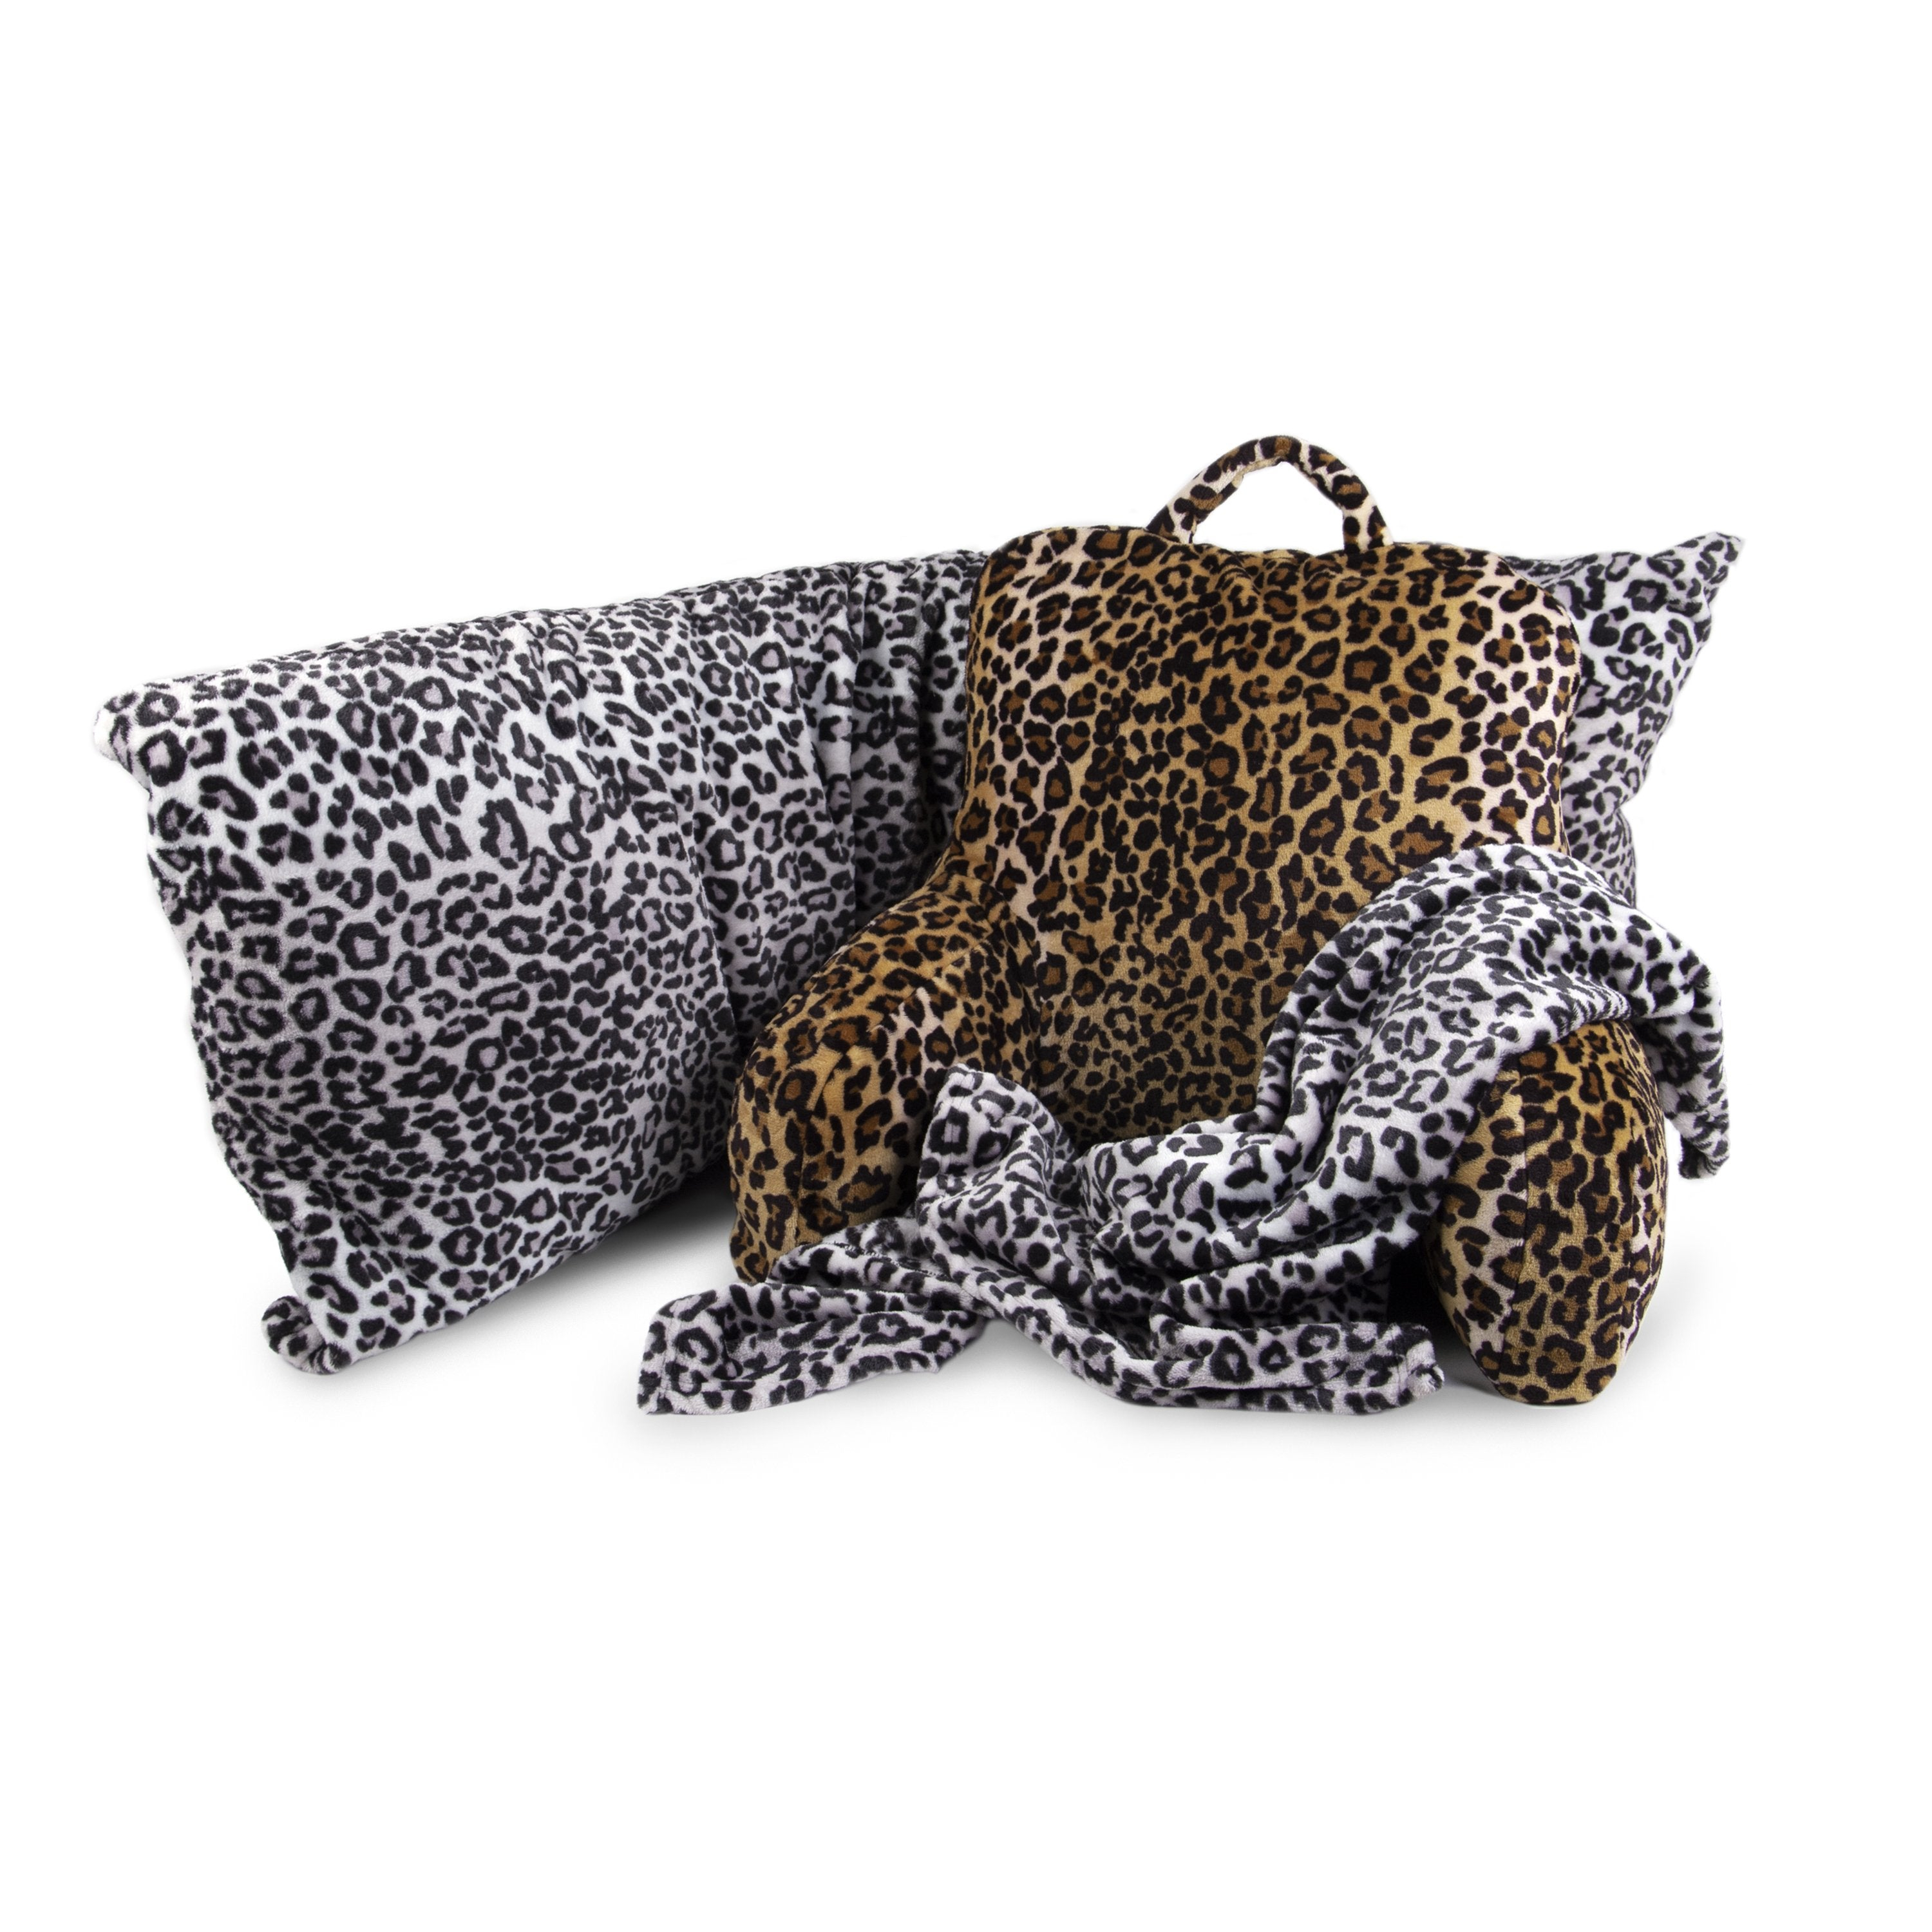 Leopard Bed Rest by Sleeping Partners